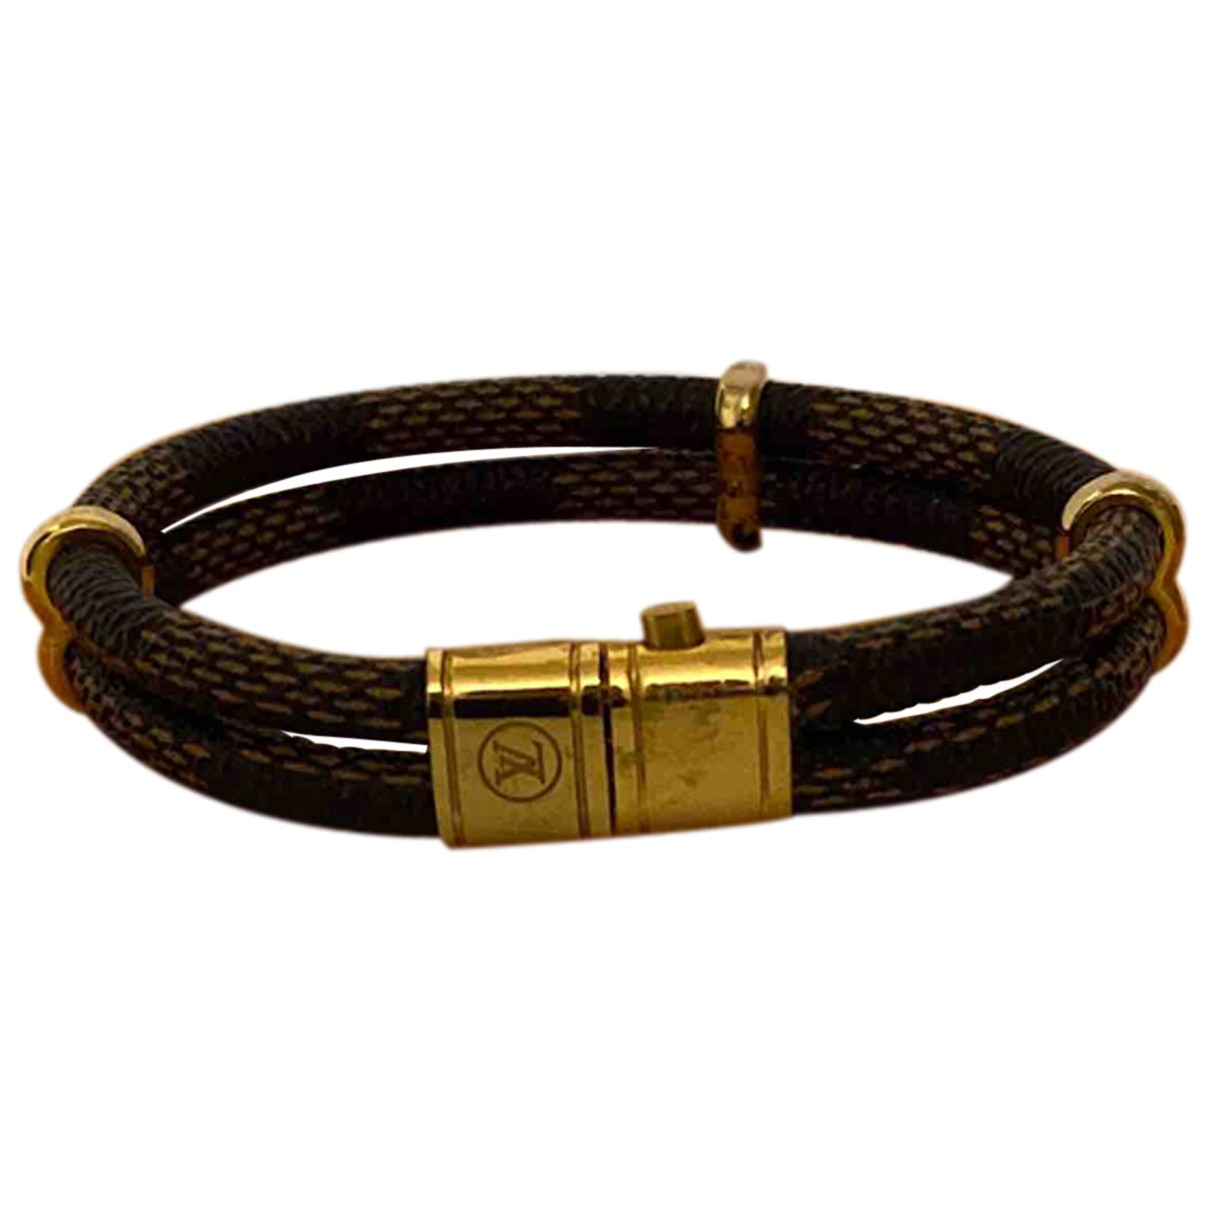 Louis Vuitton - Bracelet Lockit pour femme en cuir - marron